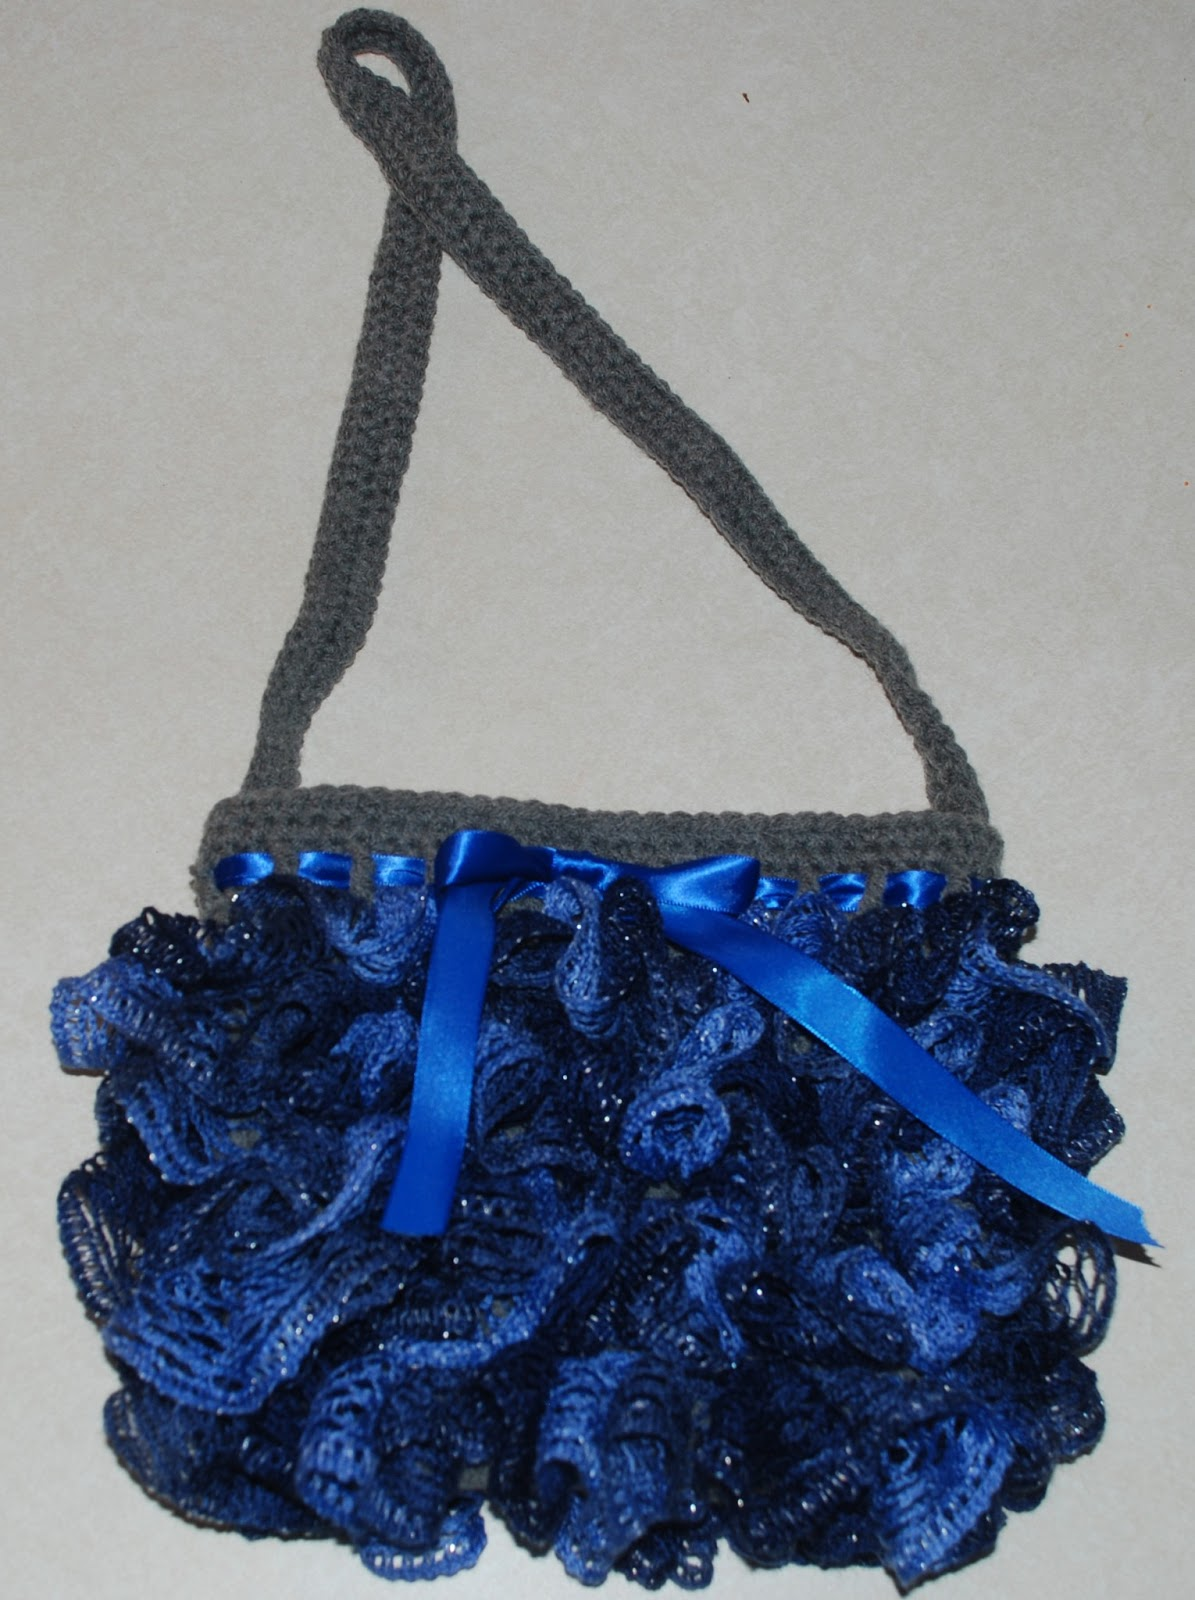 Free Ruffle Yarn Crochet Patterns : Amys Crochet Creative Creations: Crochet Sashay Yarn Purse